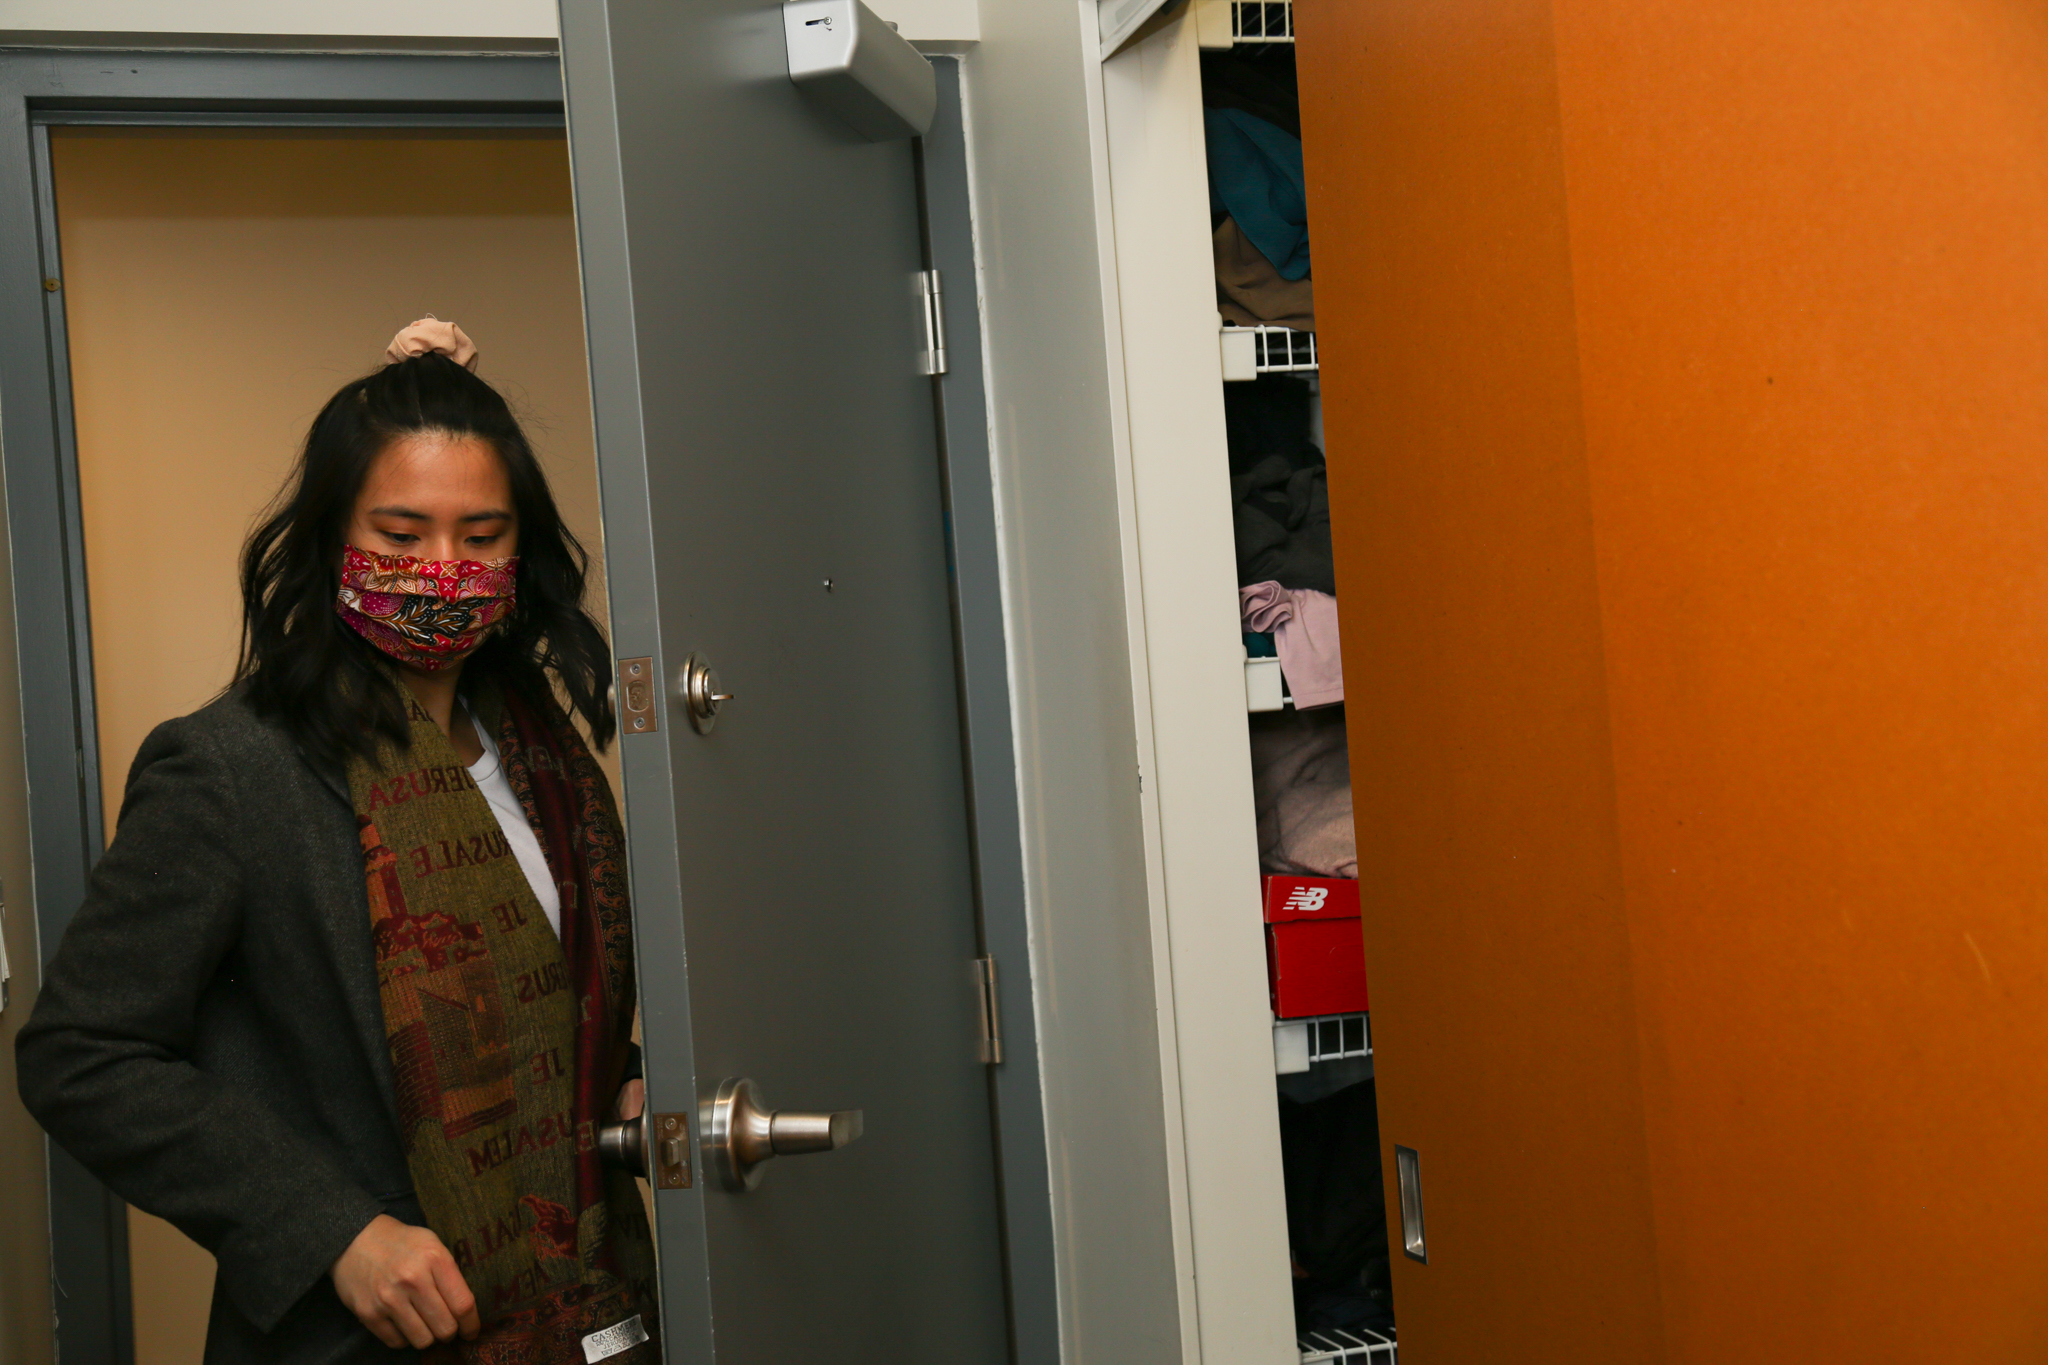 Lee heading out the door for a pandemic walk, wearing a mask made of batik — a style of textile art commonly found in Malaysia.